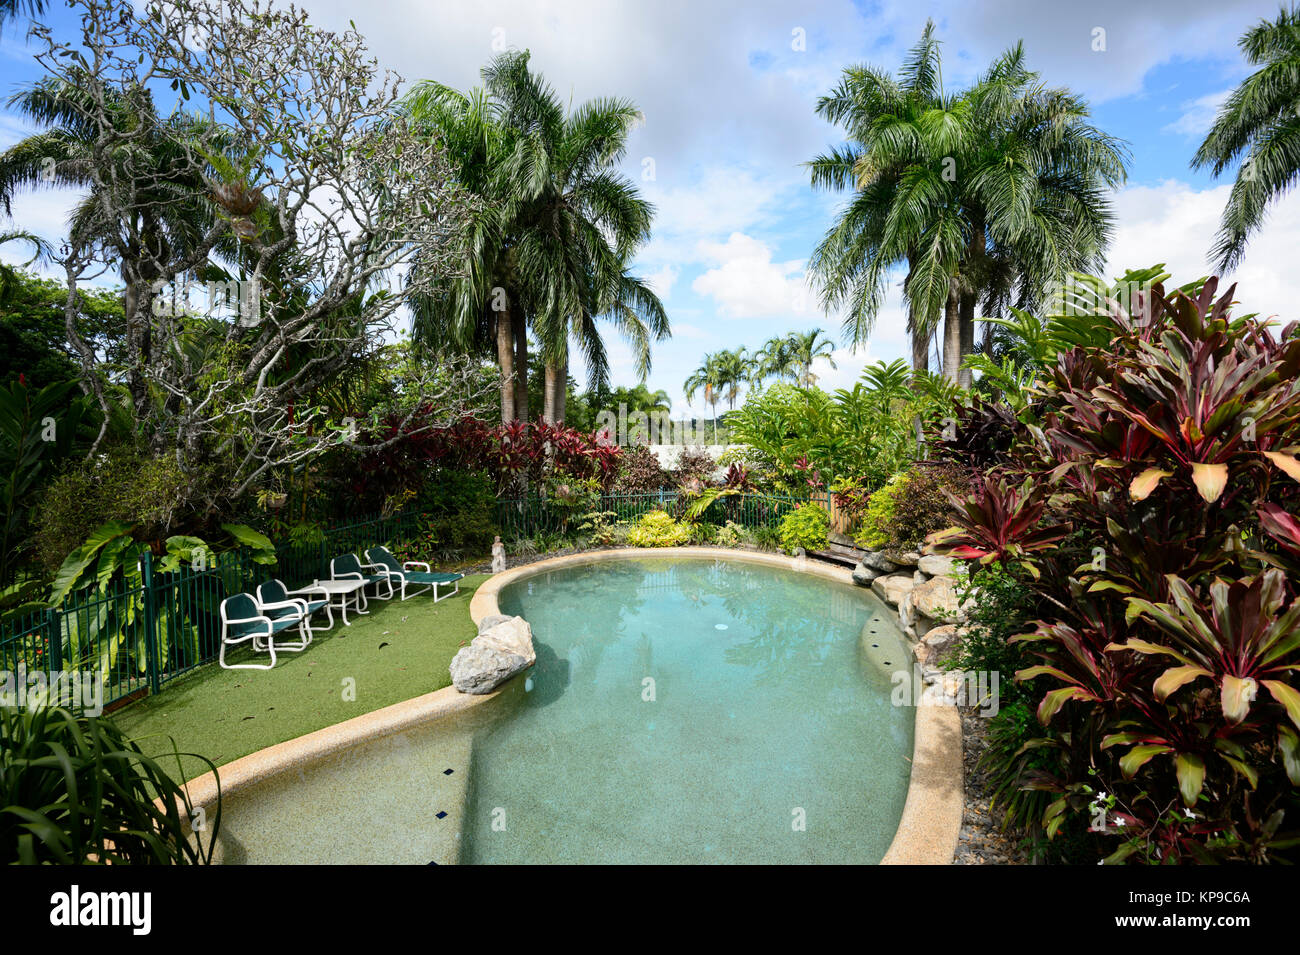 Piscina rodeada de exuberante vegetación tropical en el trópico húmedo, Cairns, Far North Queensland, Imagen De Stock